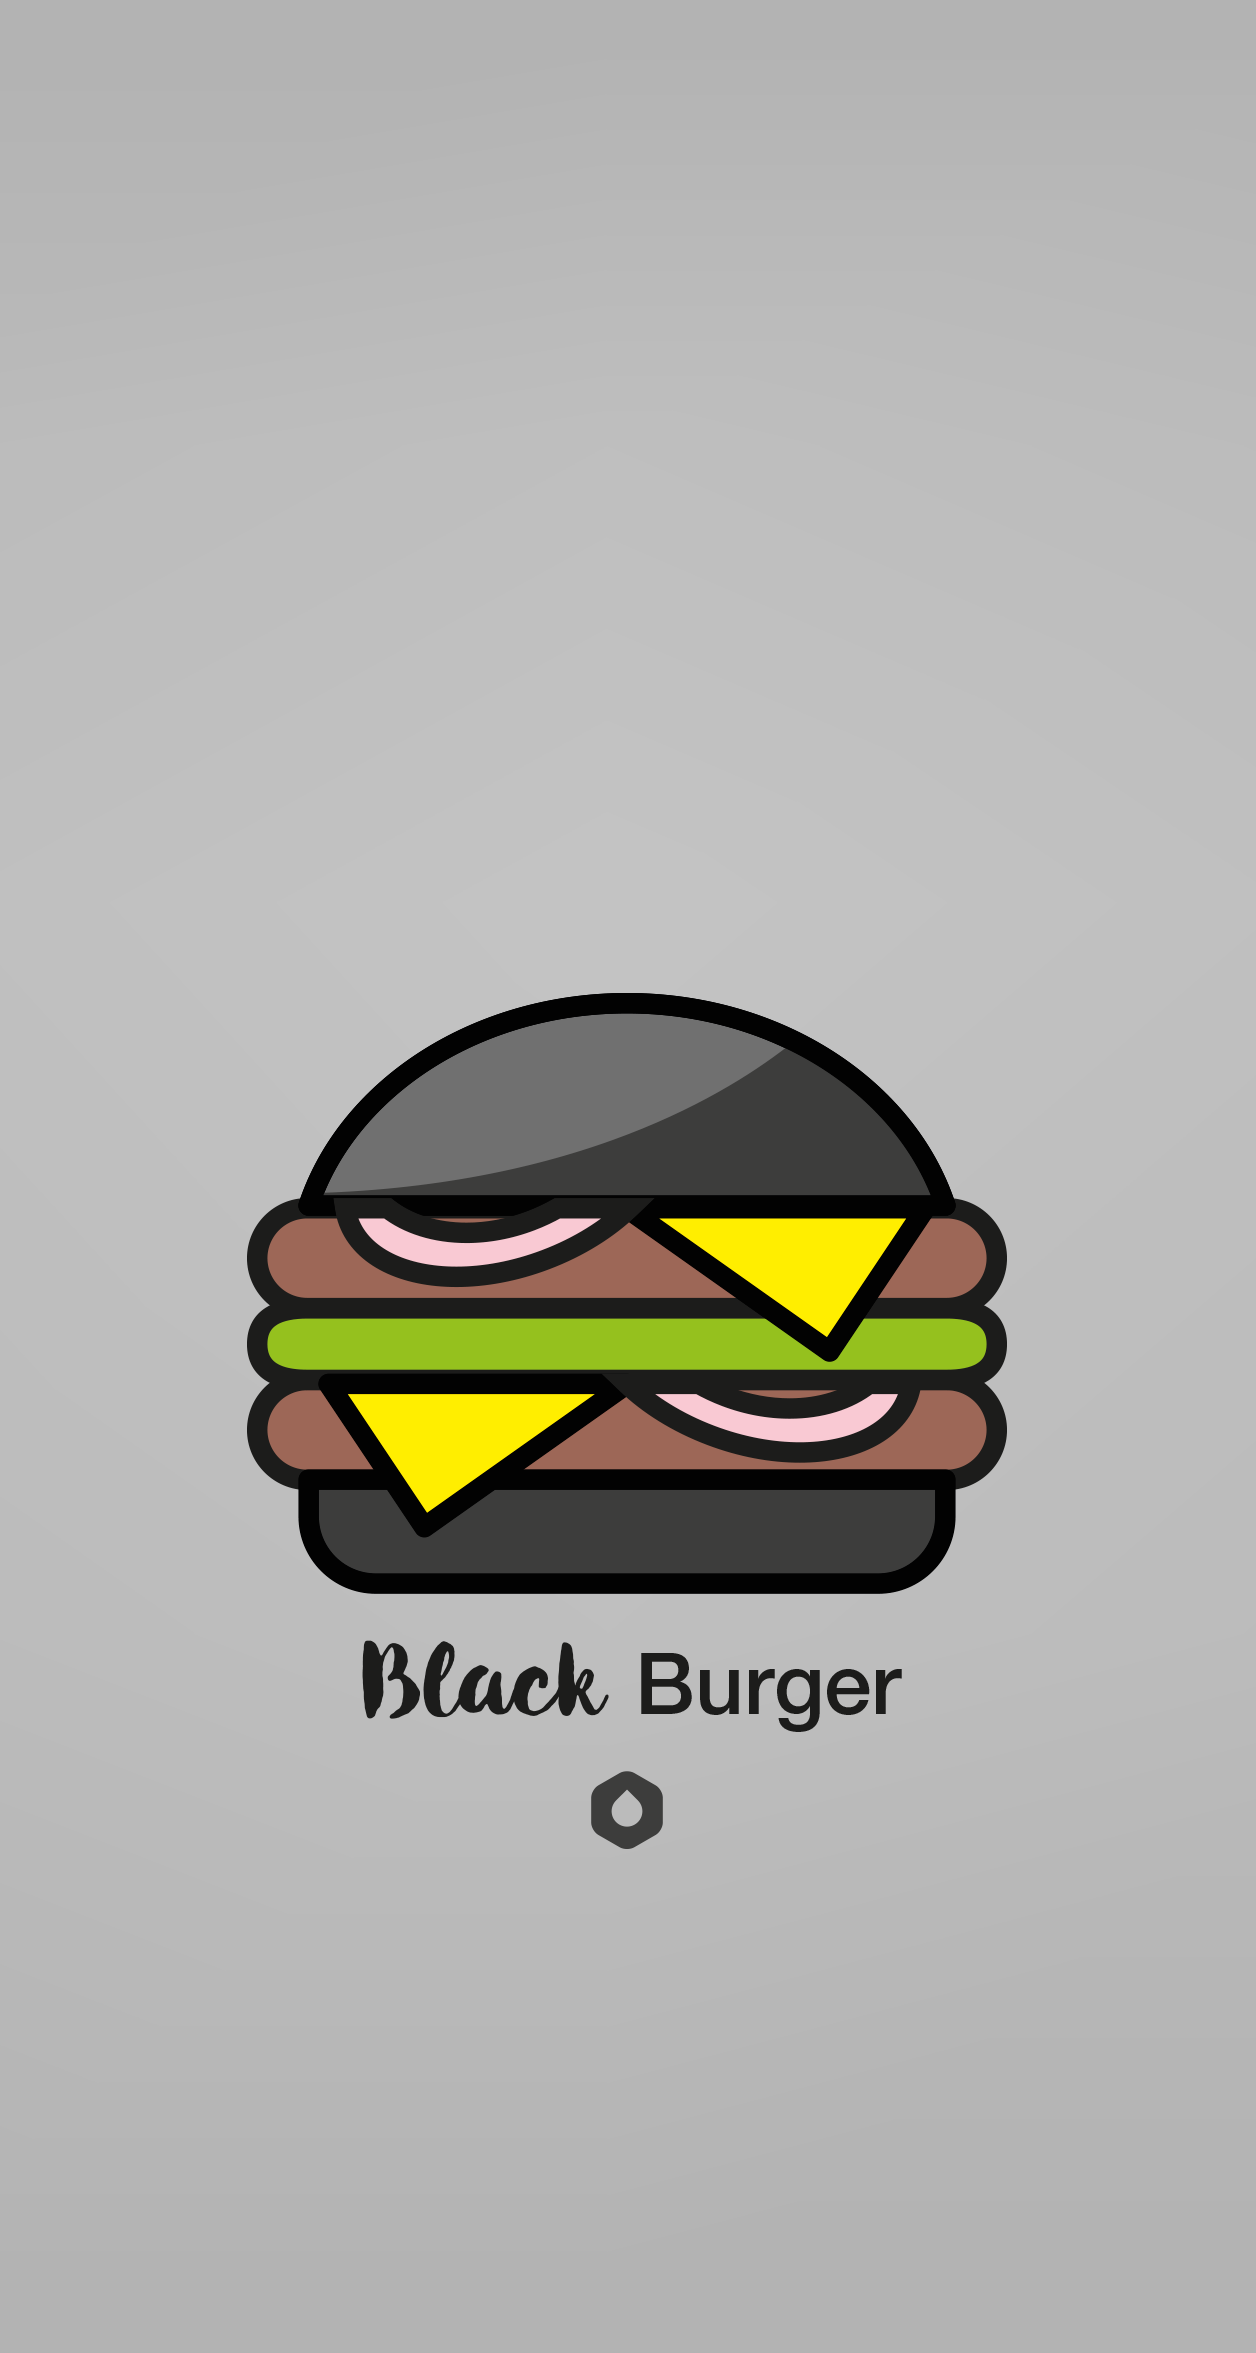 Wallpaper Pick Your Burger - iPhone6P - Black